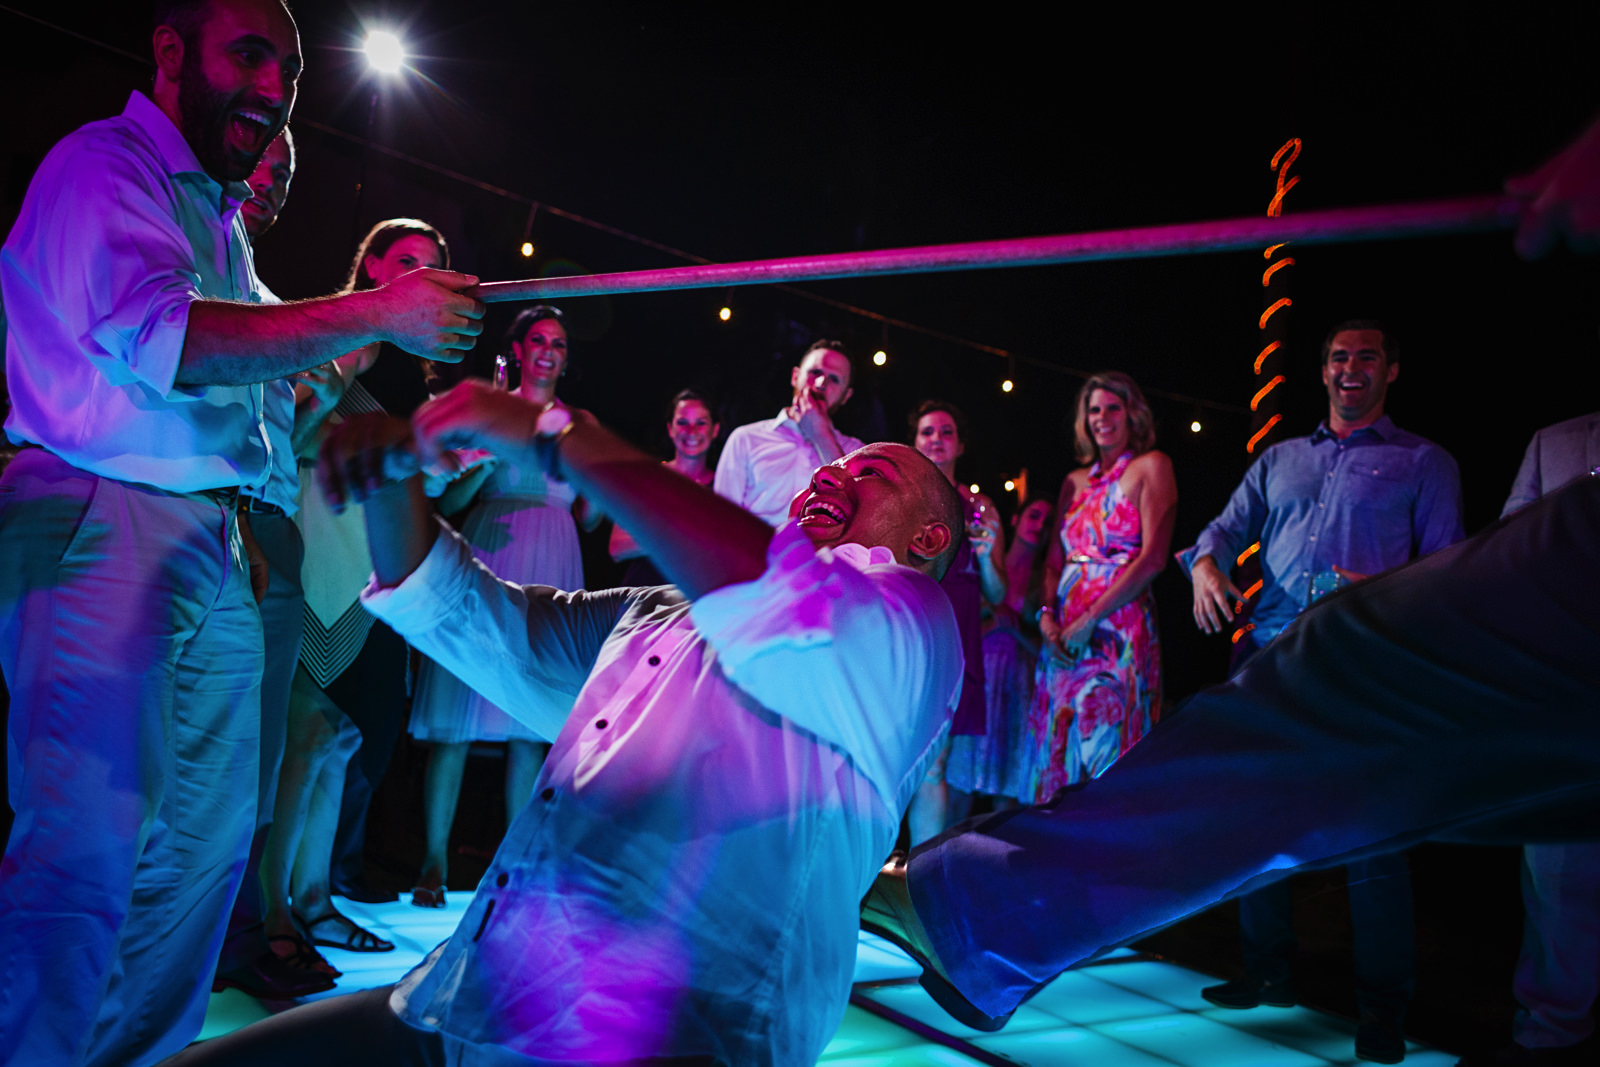 Guest almost falling playing limbo at wedding reception party